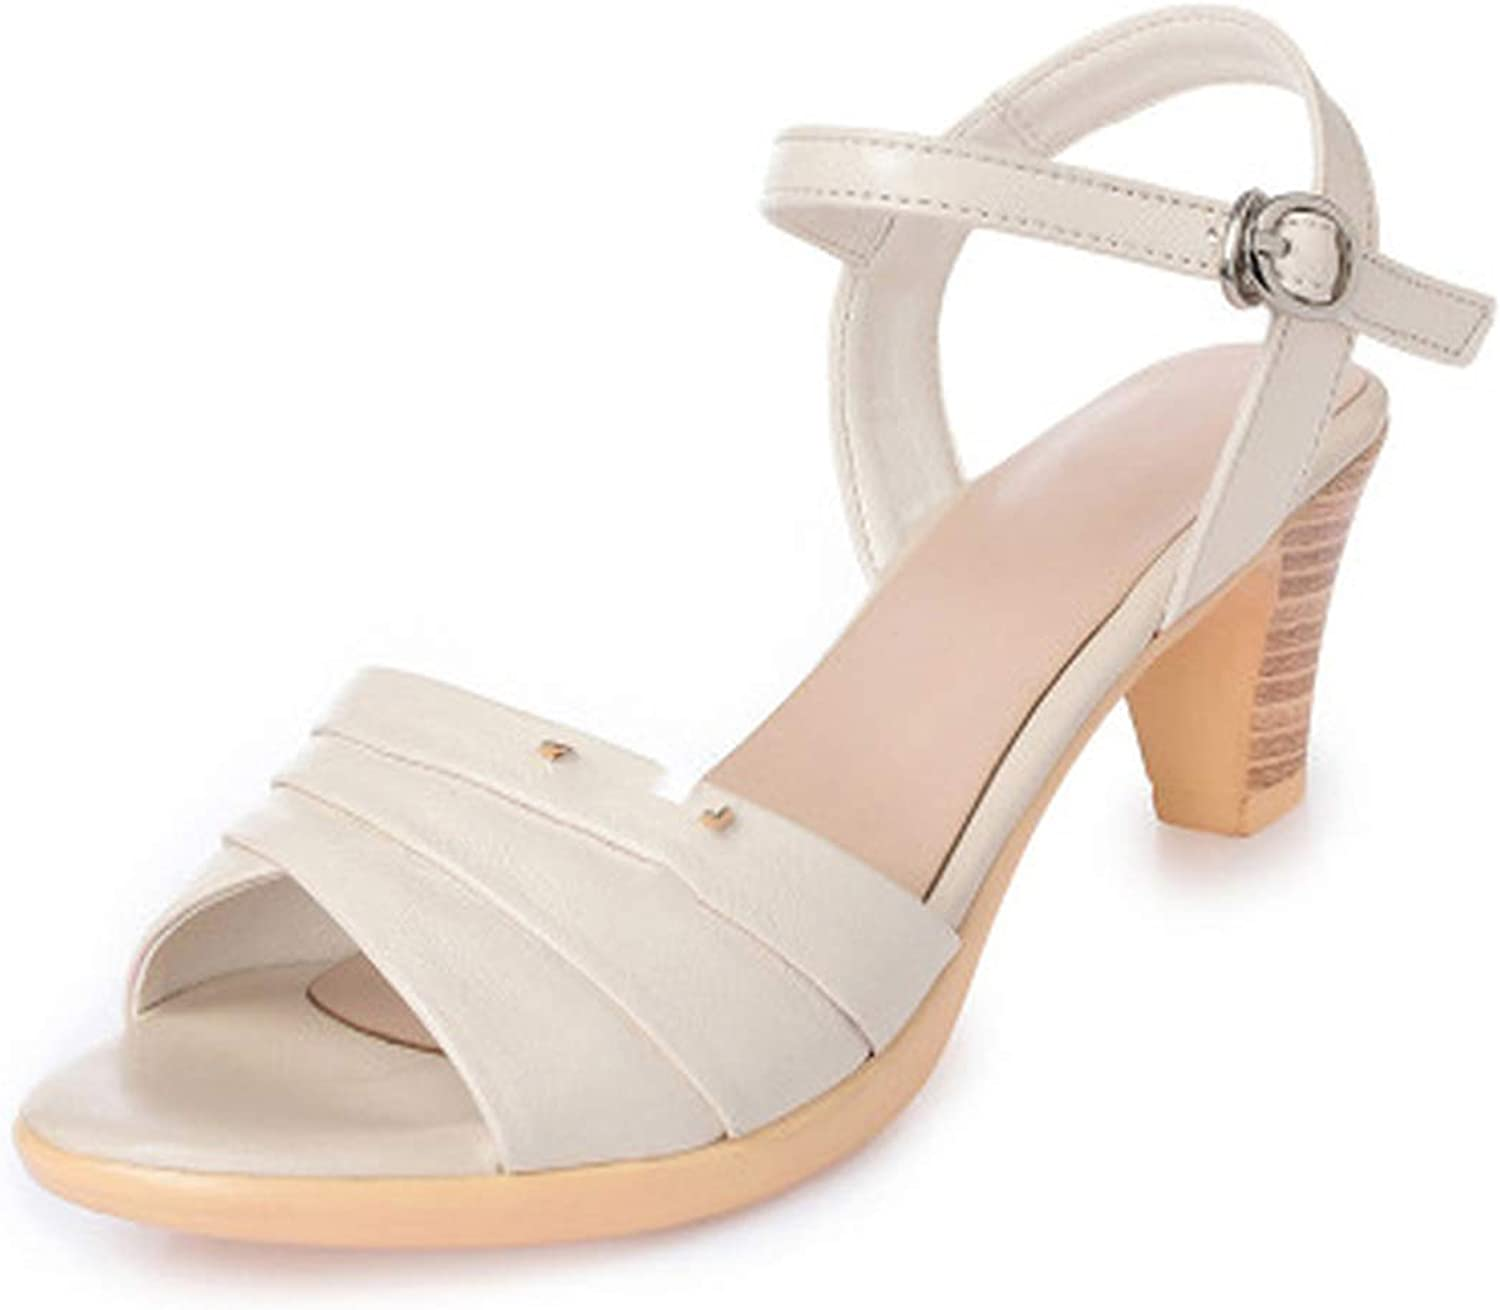 Summer Women's Sandals Genuine Leather Fish Mouth high Heel Platform Open Toes shoes Plus Size